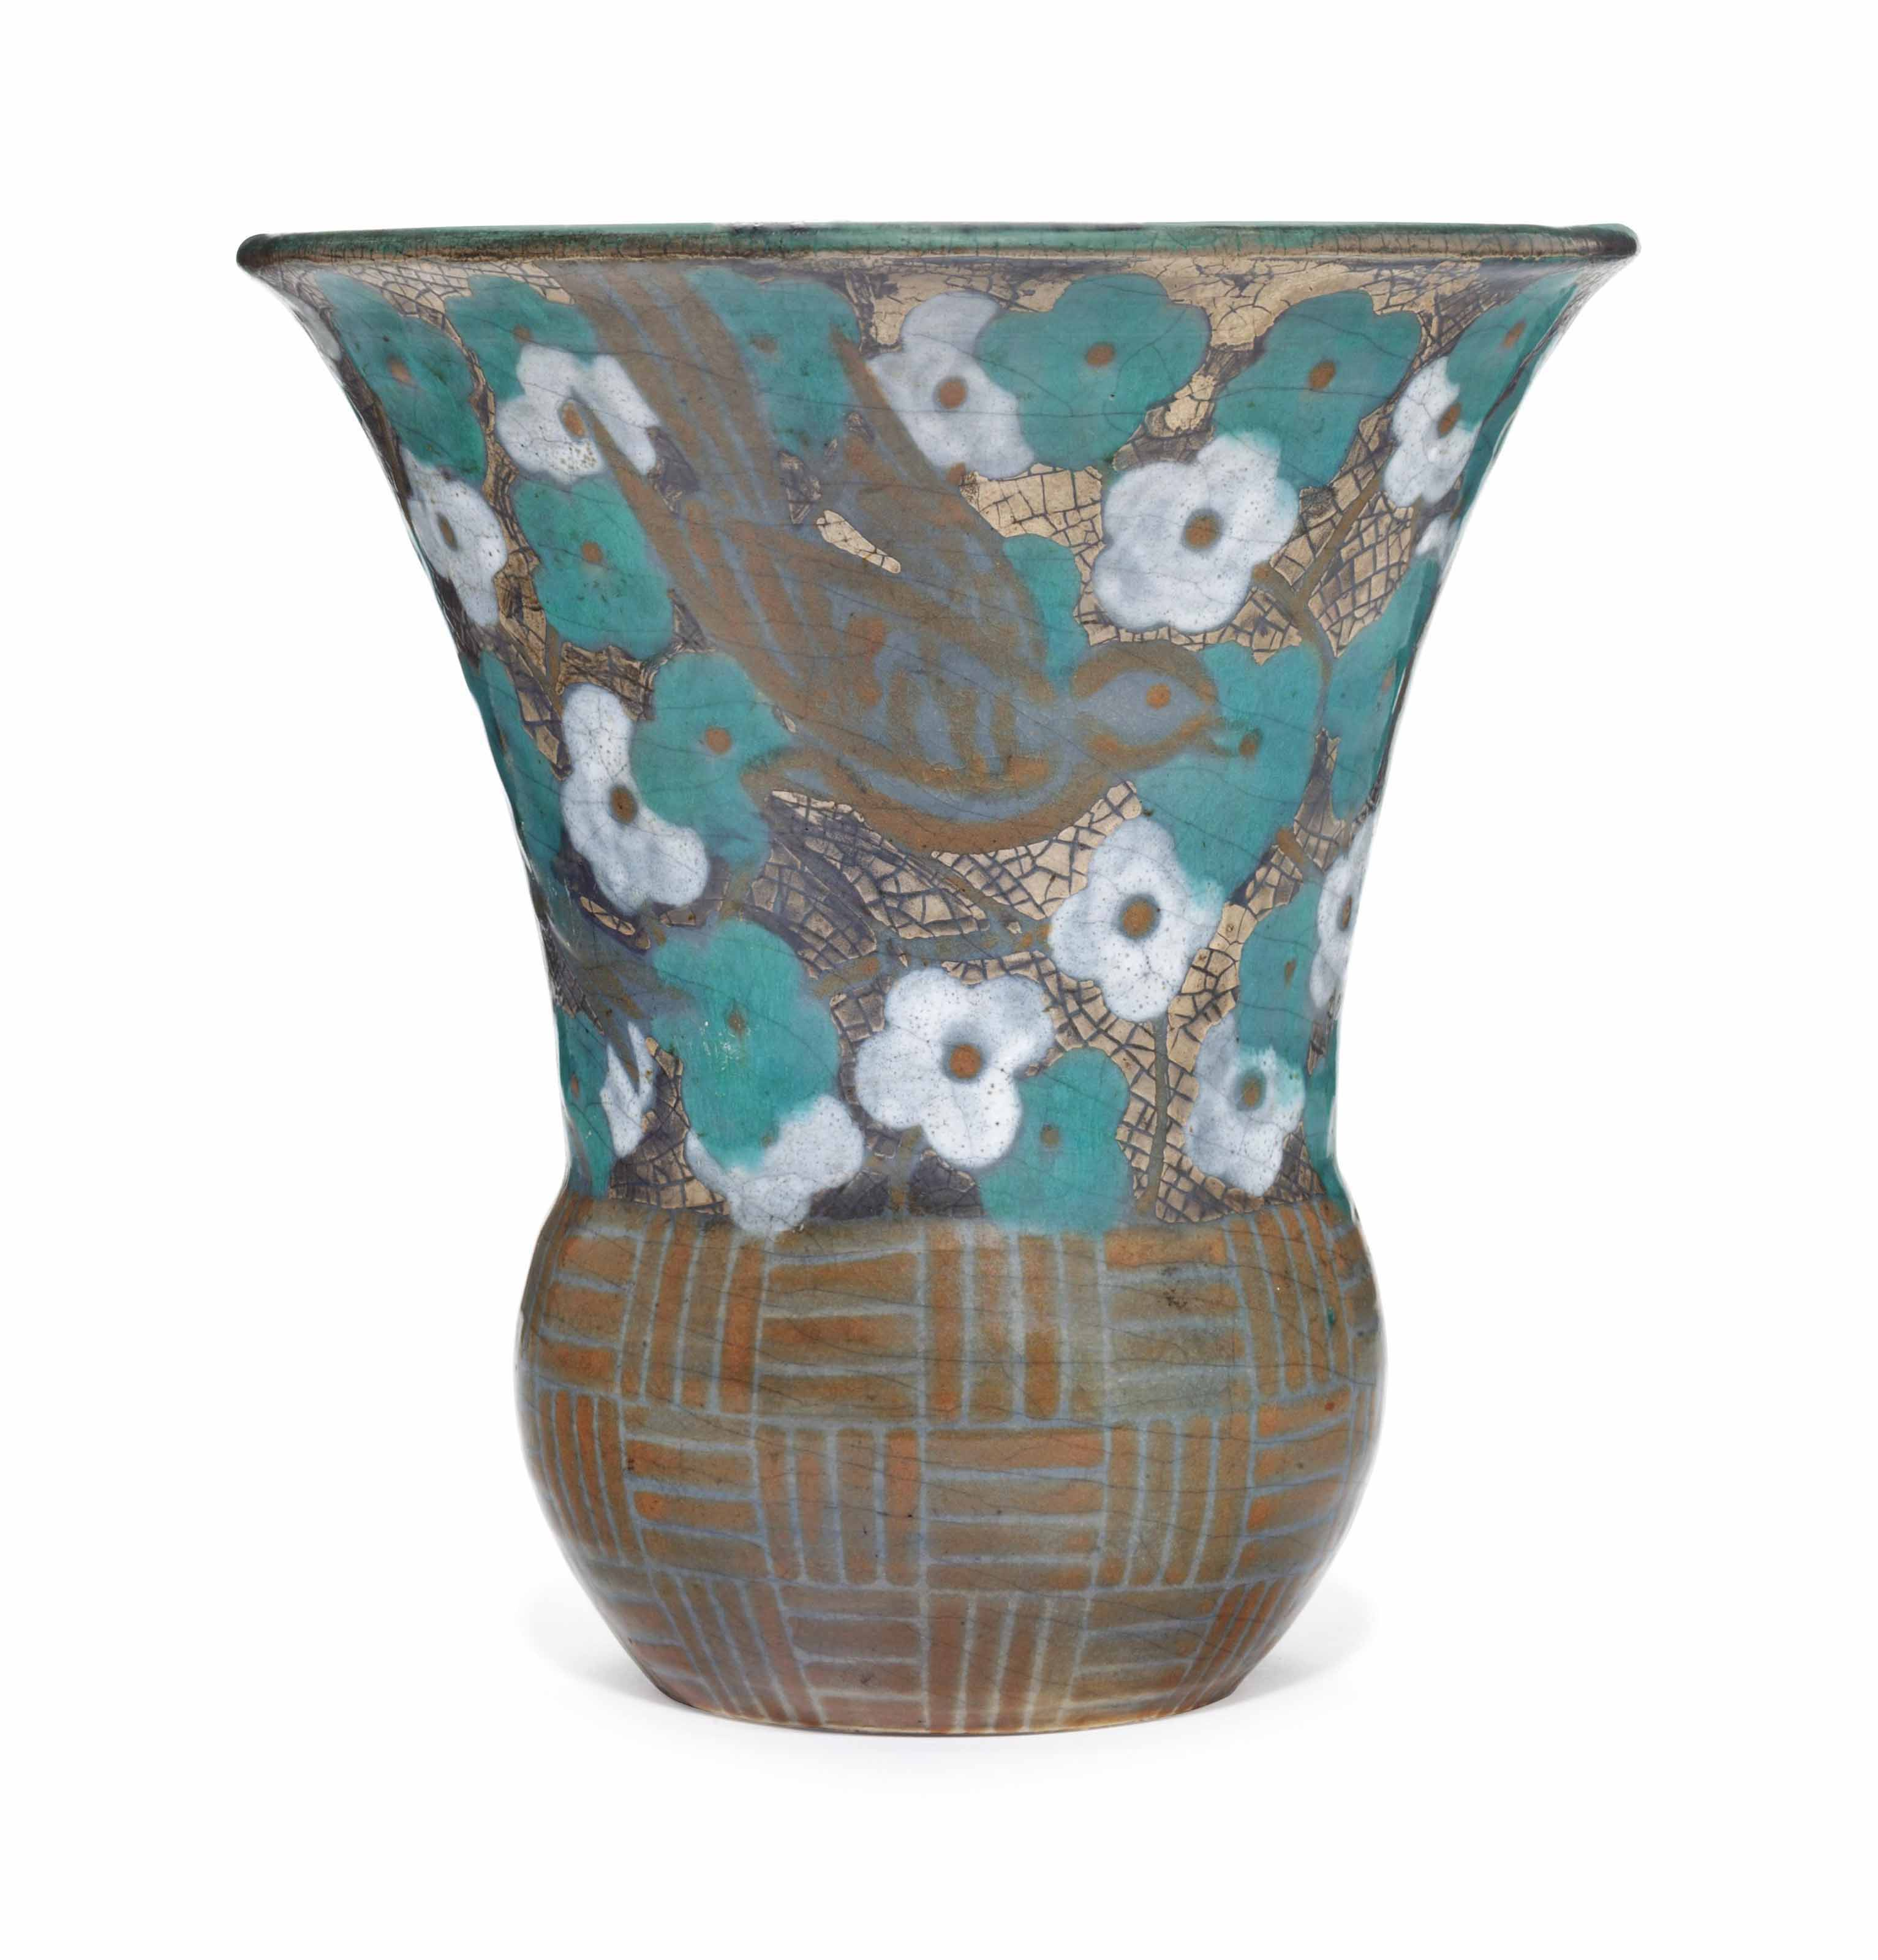 A FRENCH EARTHENWARE VASE